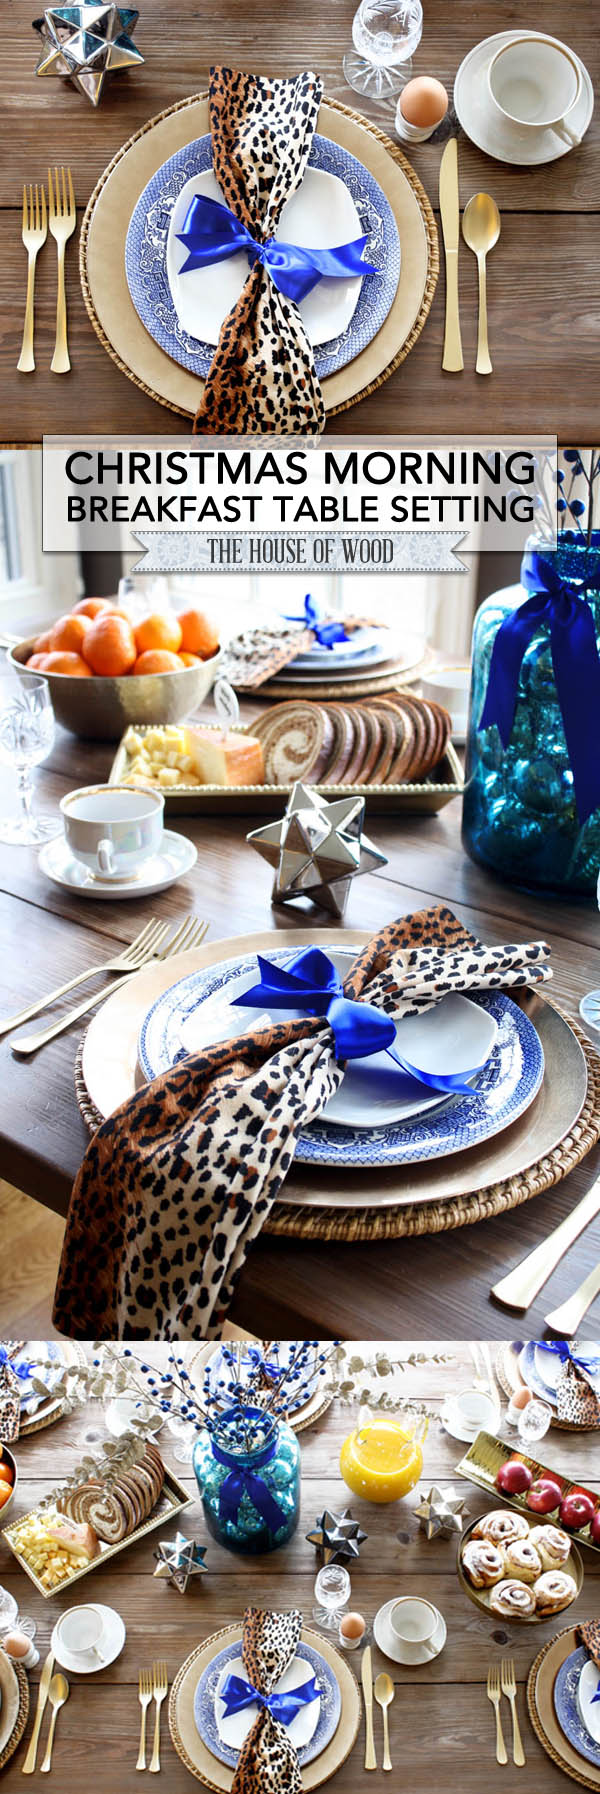 Bring color and glam to your holiday table with this stunning Christmas tablescape decorated with leopard print, royal blue, and gold! | www.jenwoodhouse.com/blog